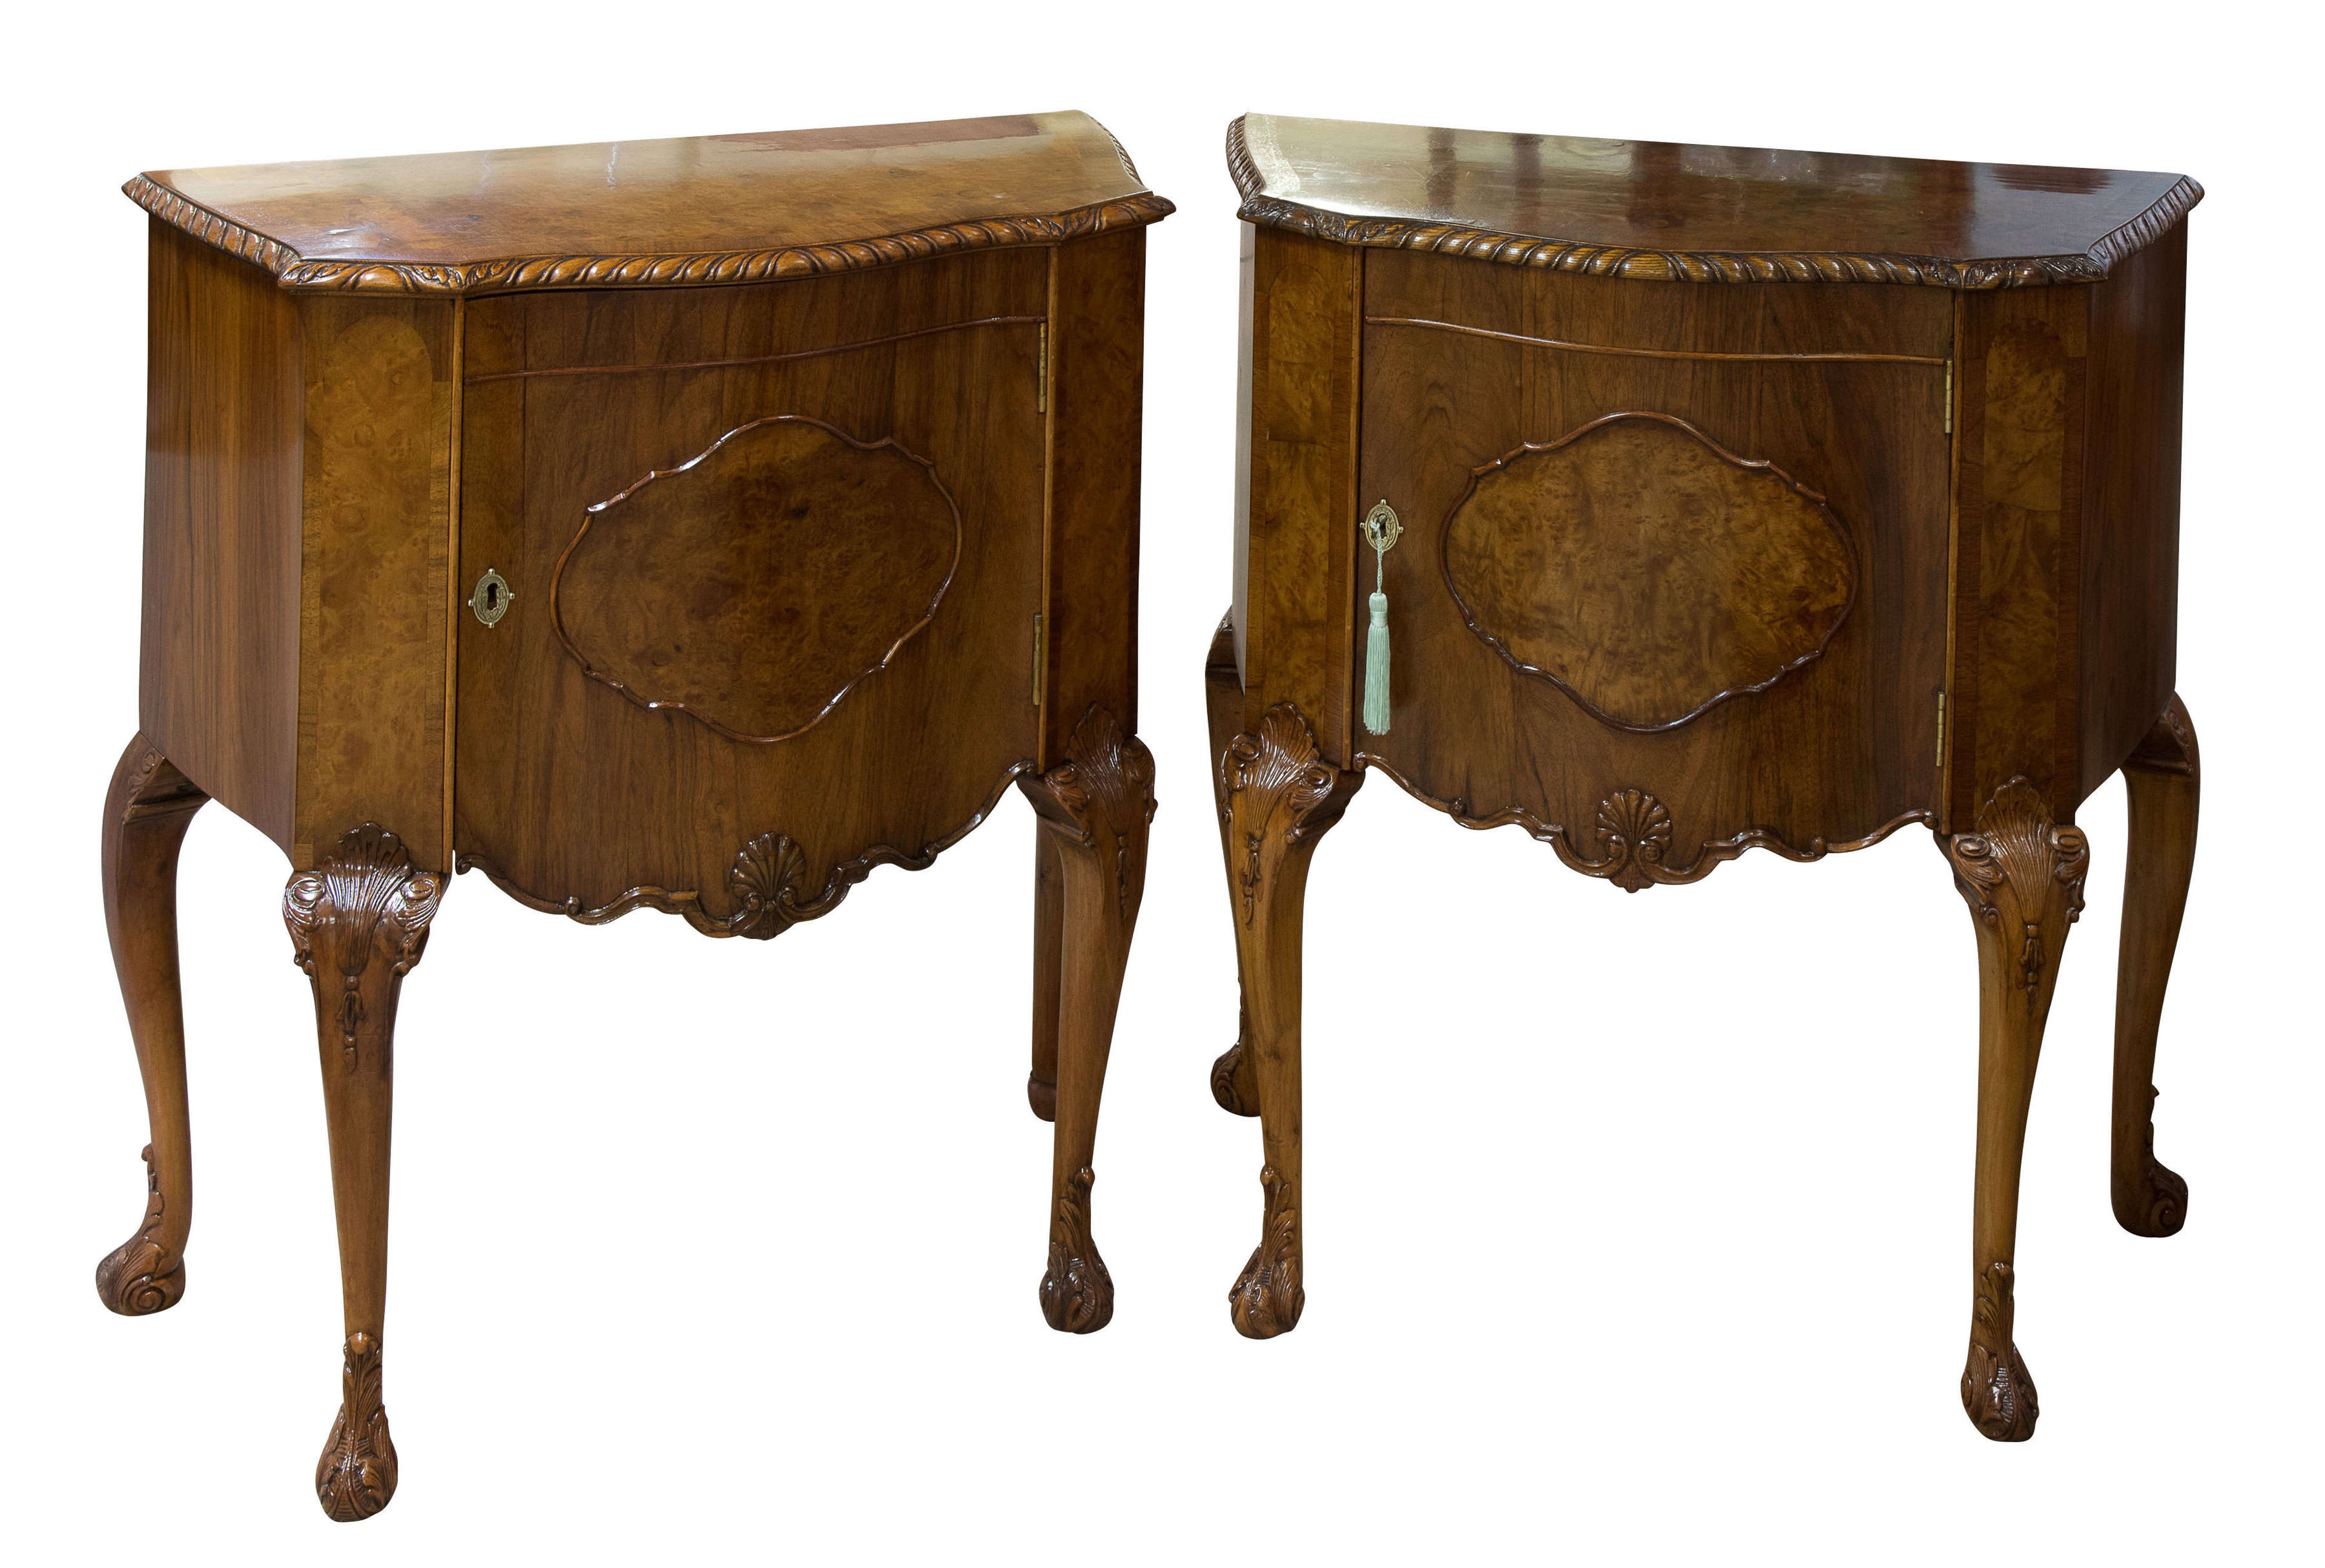 A Pair of Walnut Bedside Tables c1930